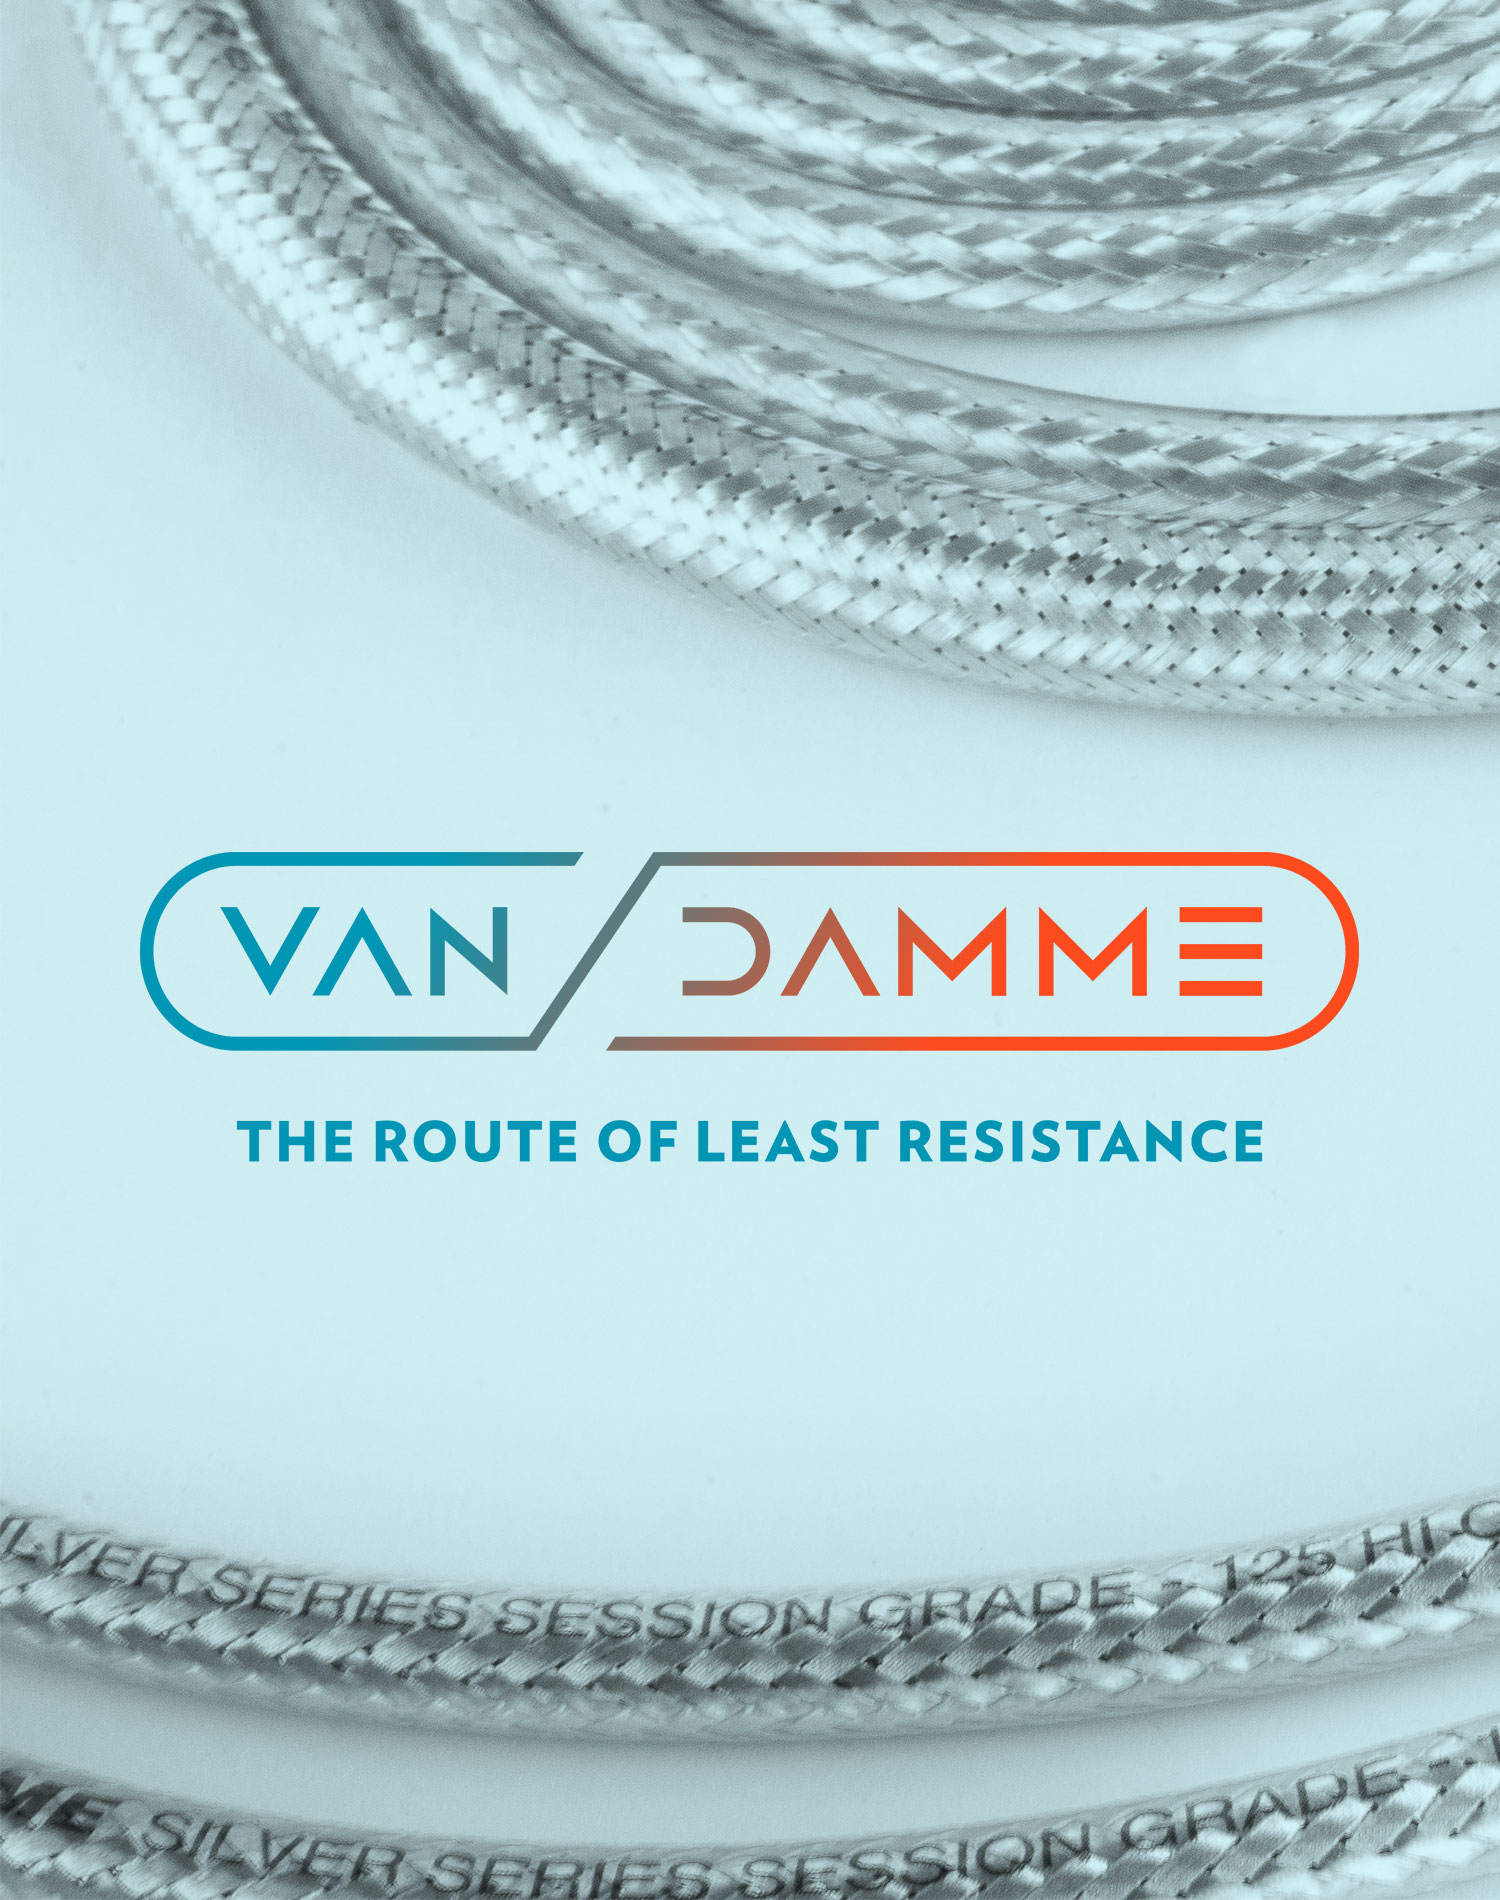 Van Damme Cable